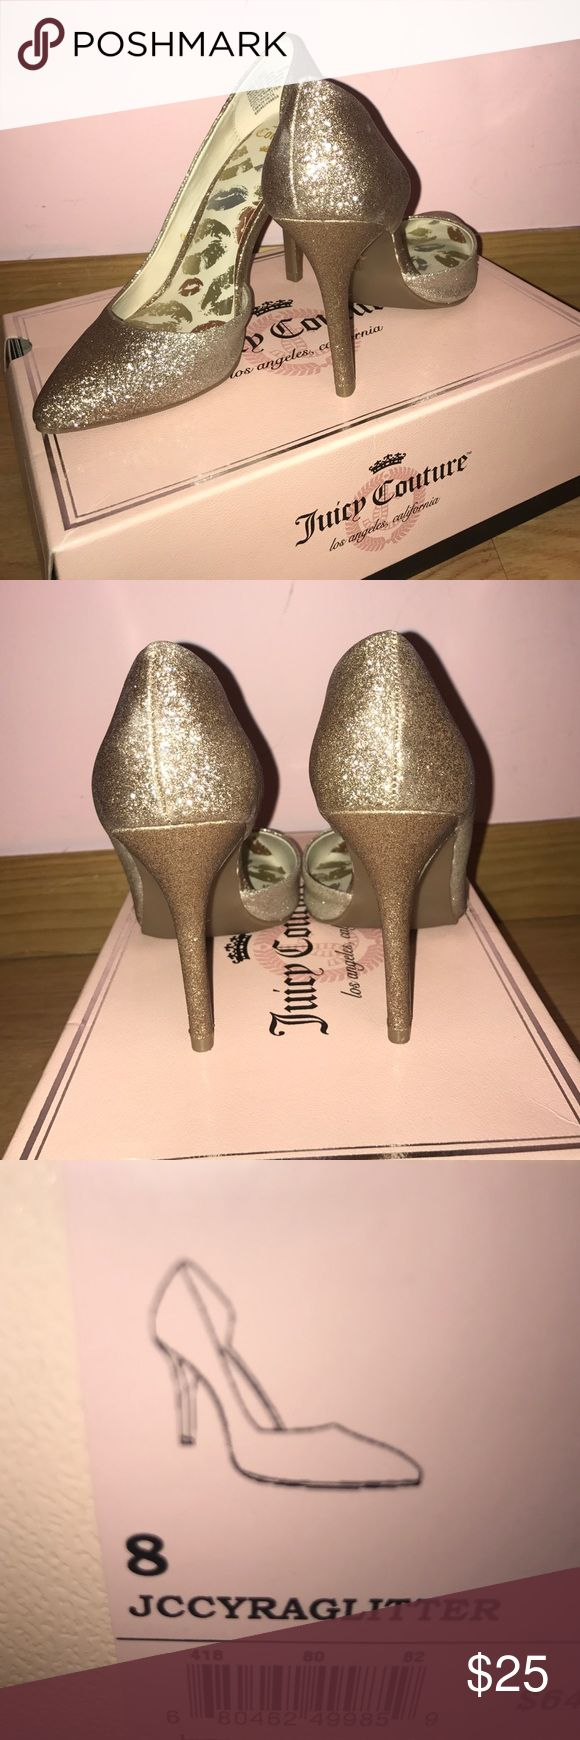 Glitter Juicy Couture heels Brand new with box. Tried on and bought but never wore them. (No Trades) Bird by Juicy Couture Shoes Heels